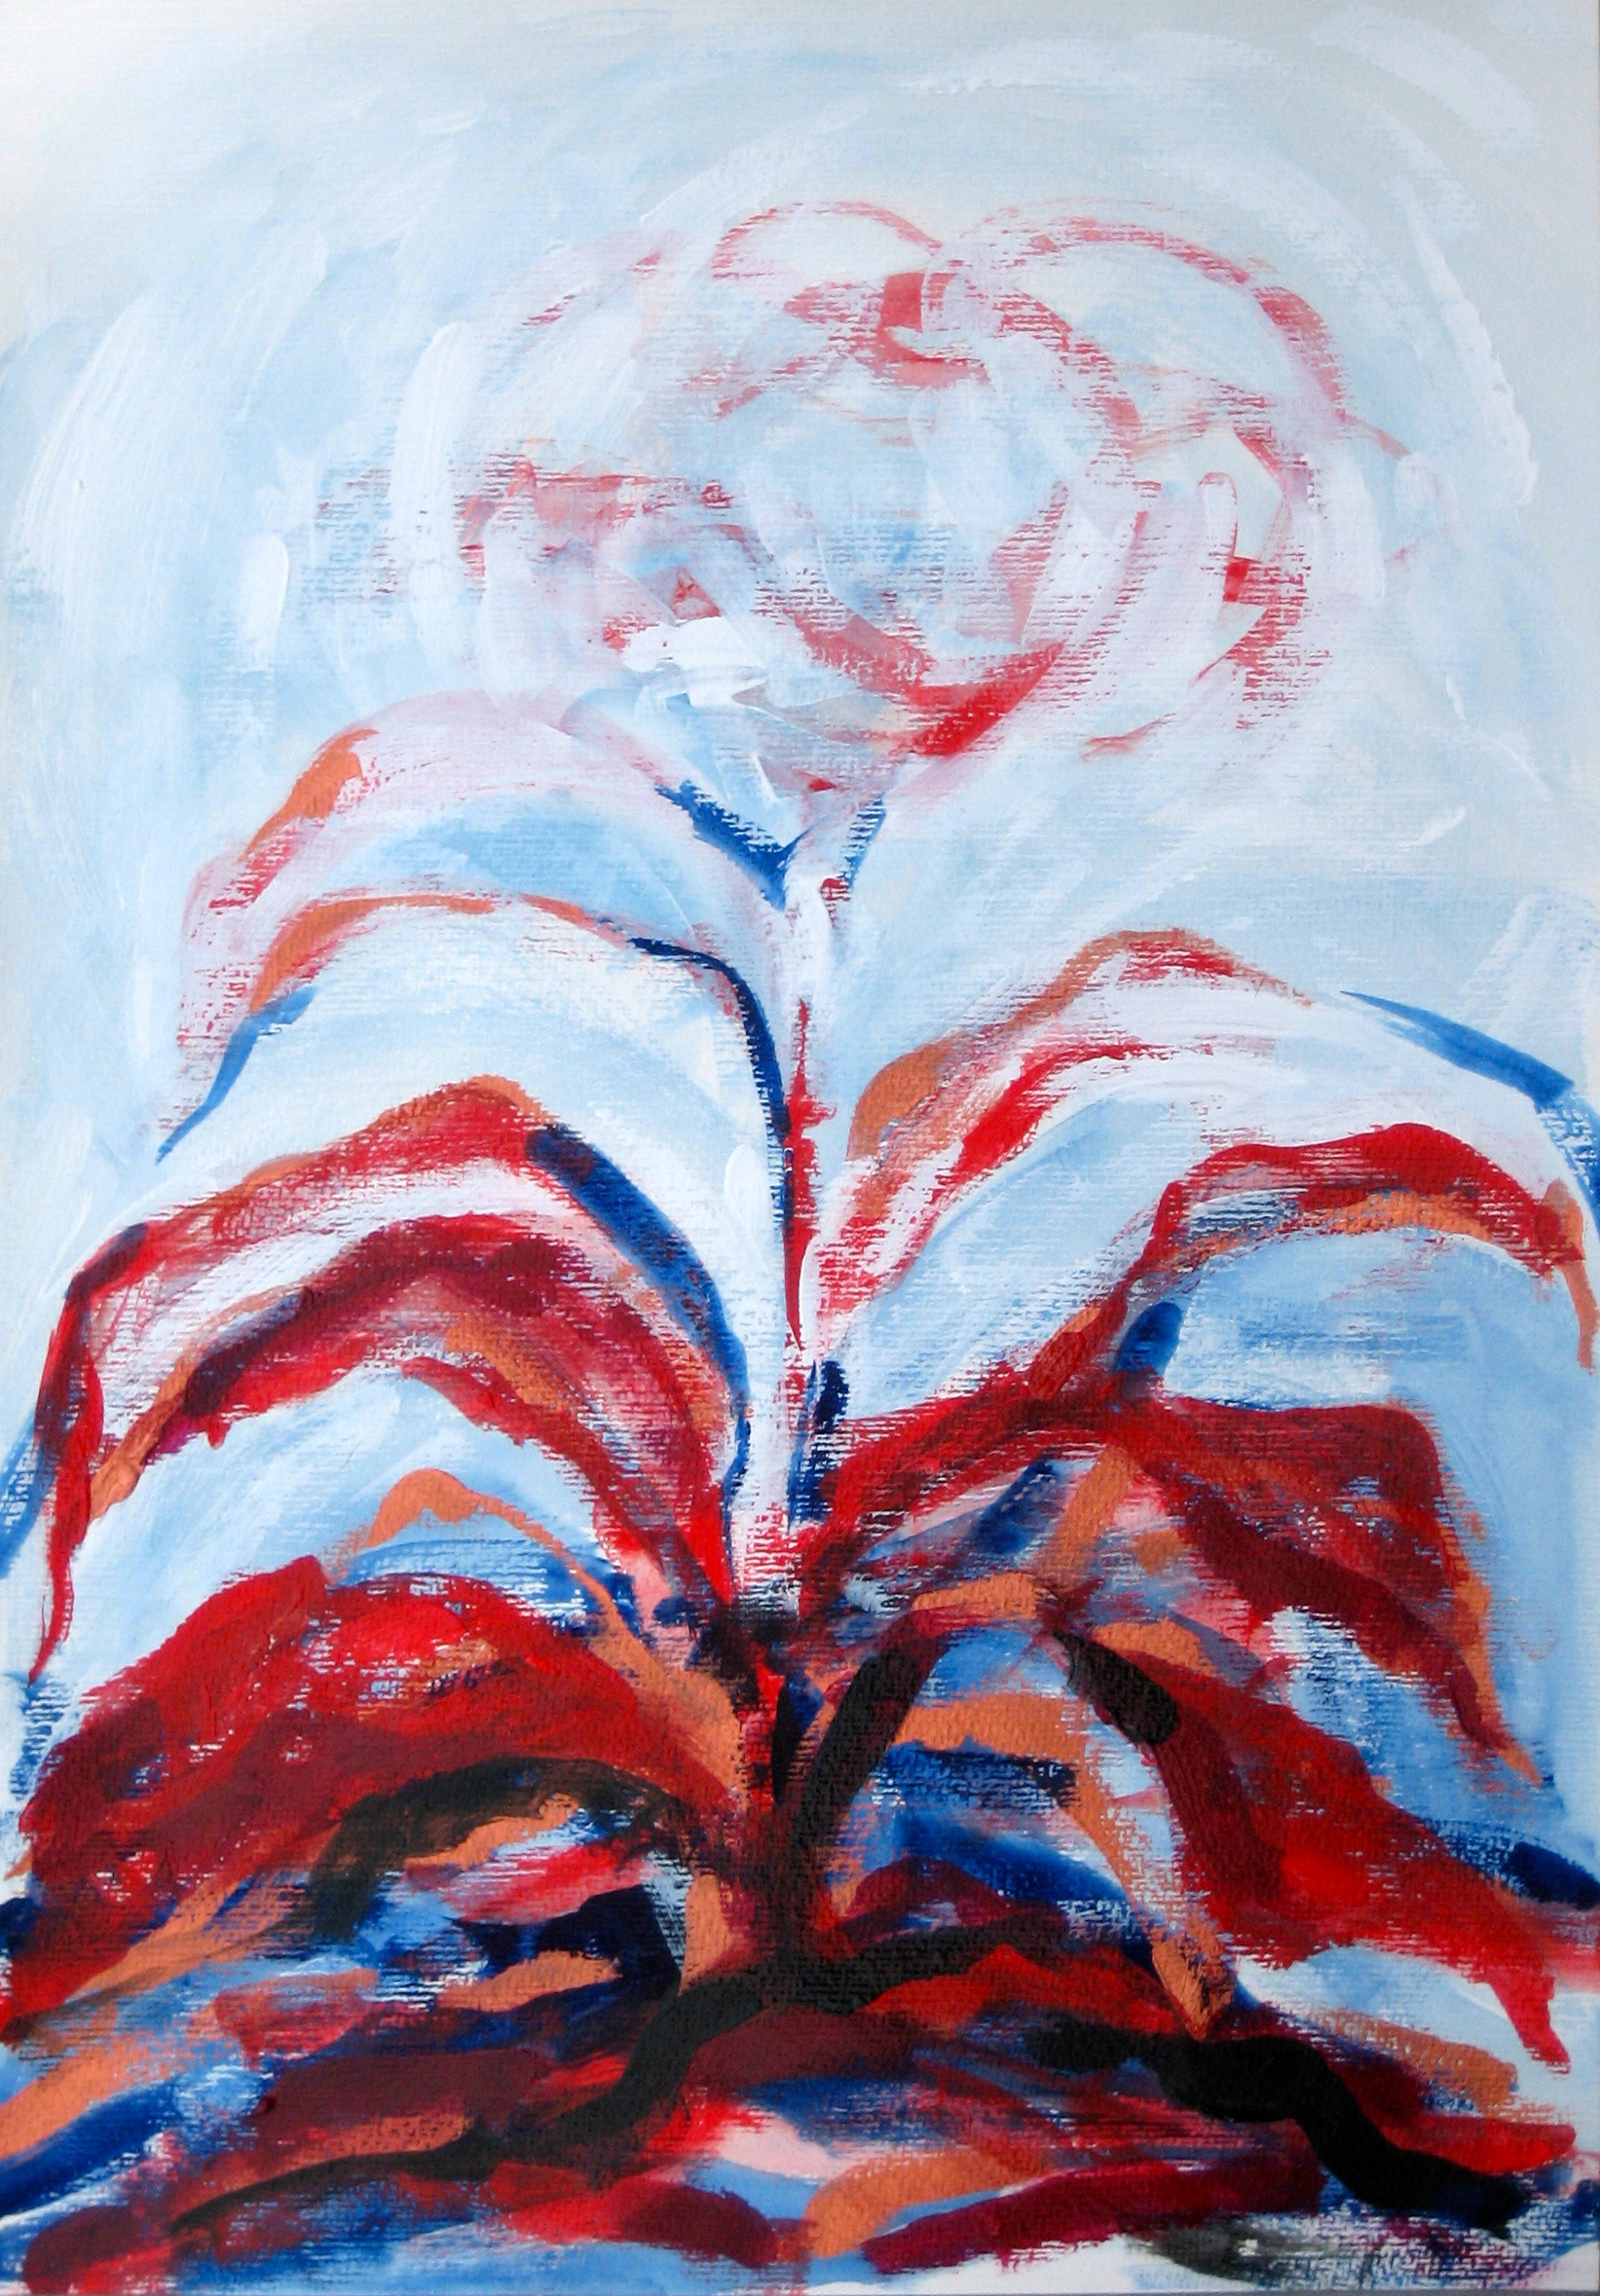 ninth Transformation # nine of Archetypal Plant  acrylic on paper 18in x 24in